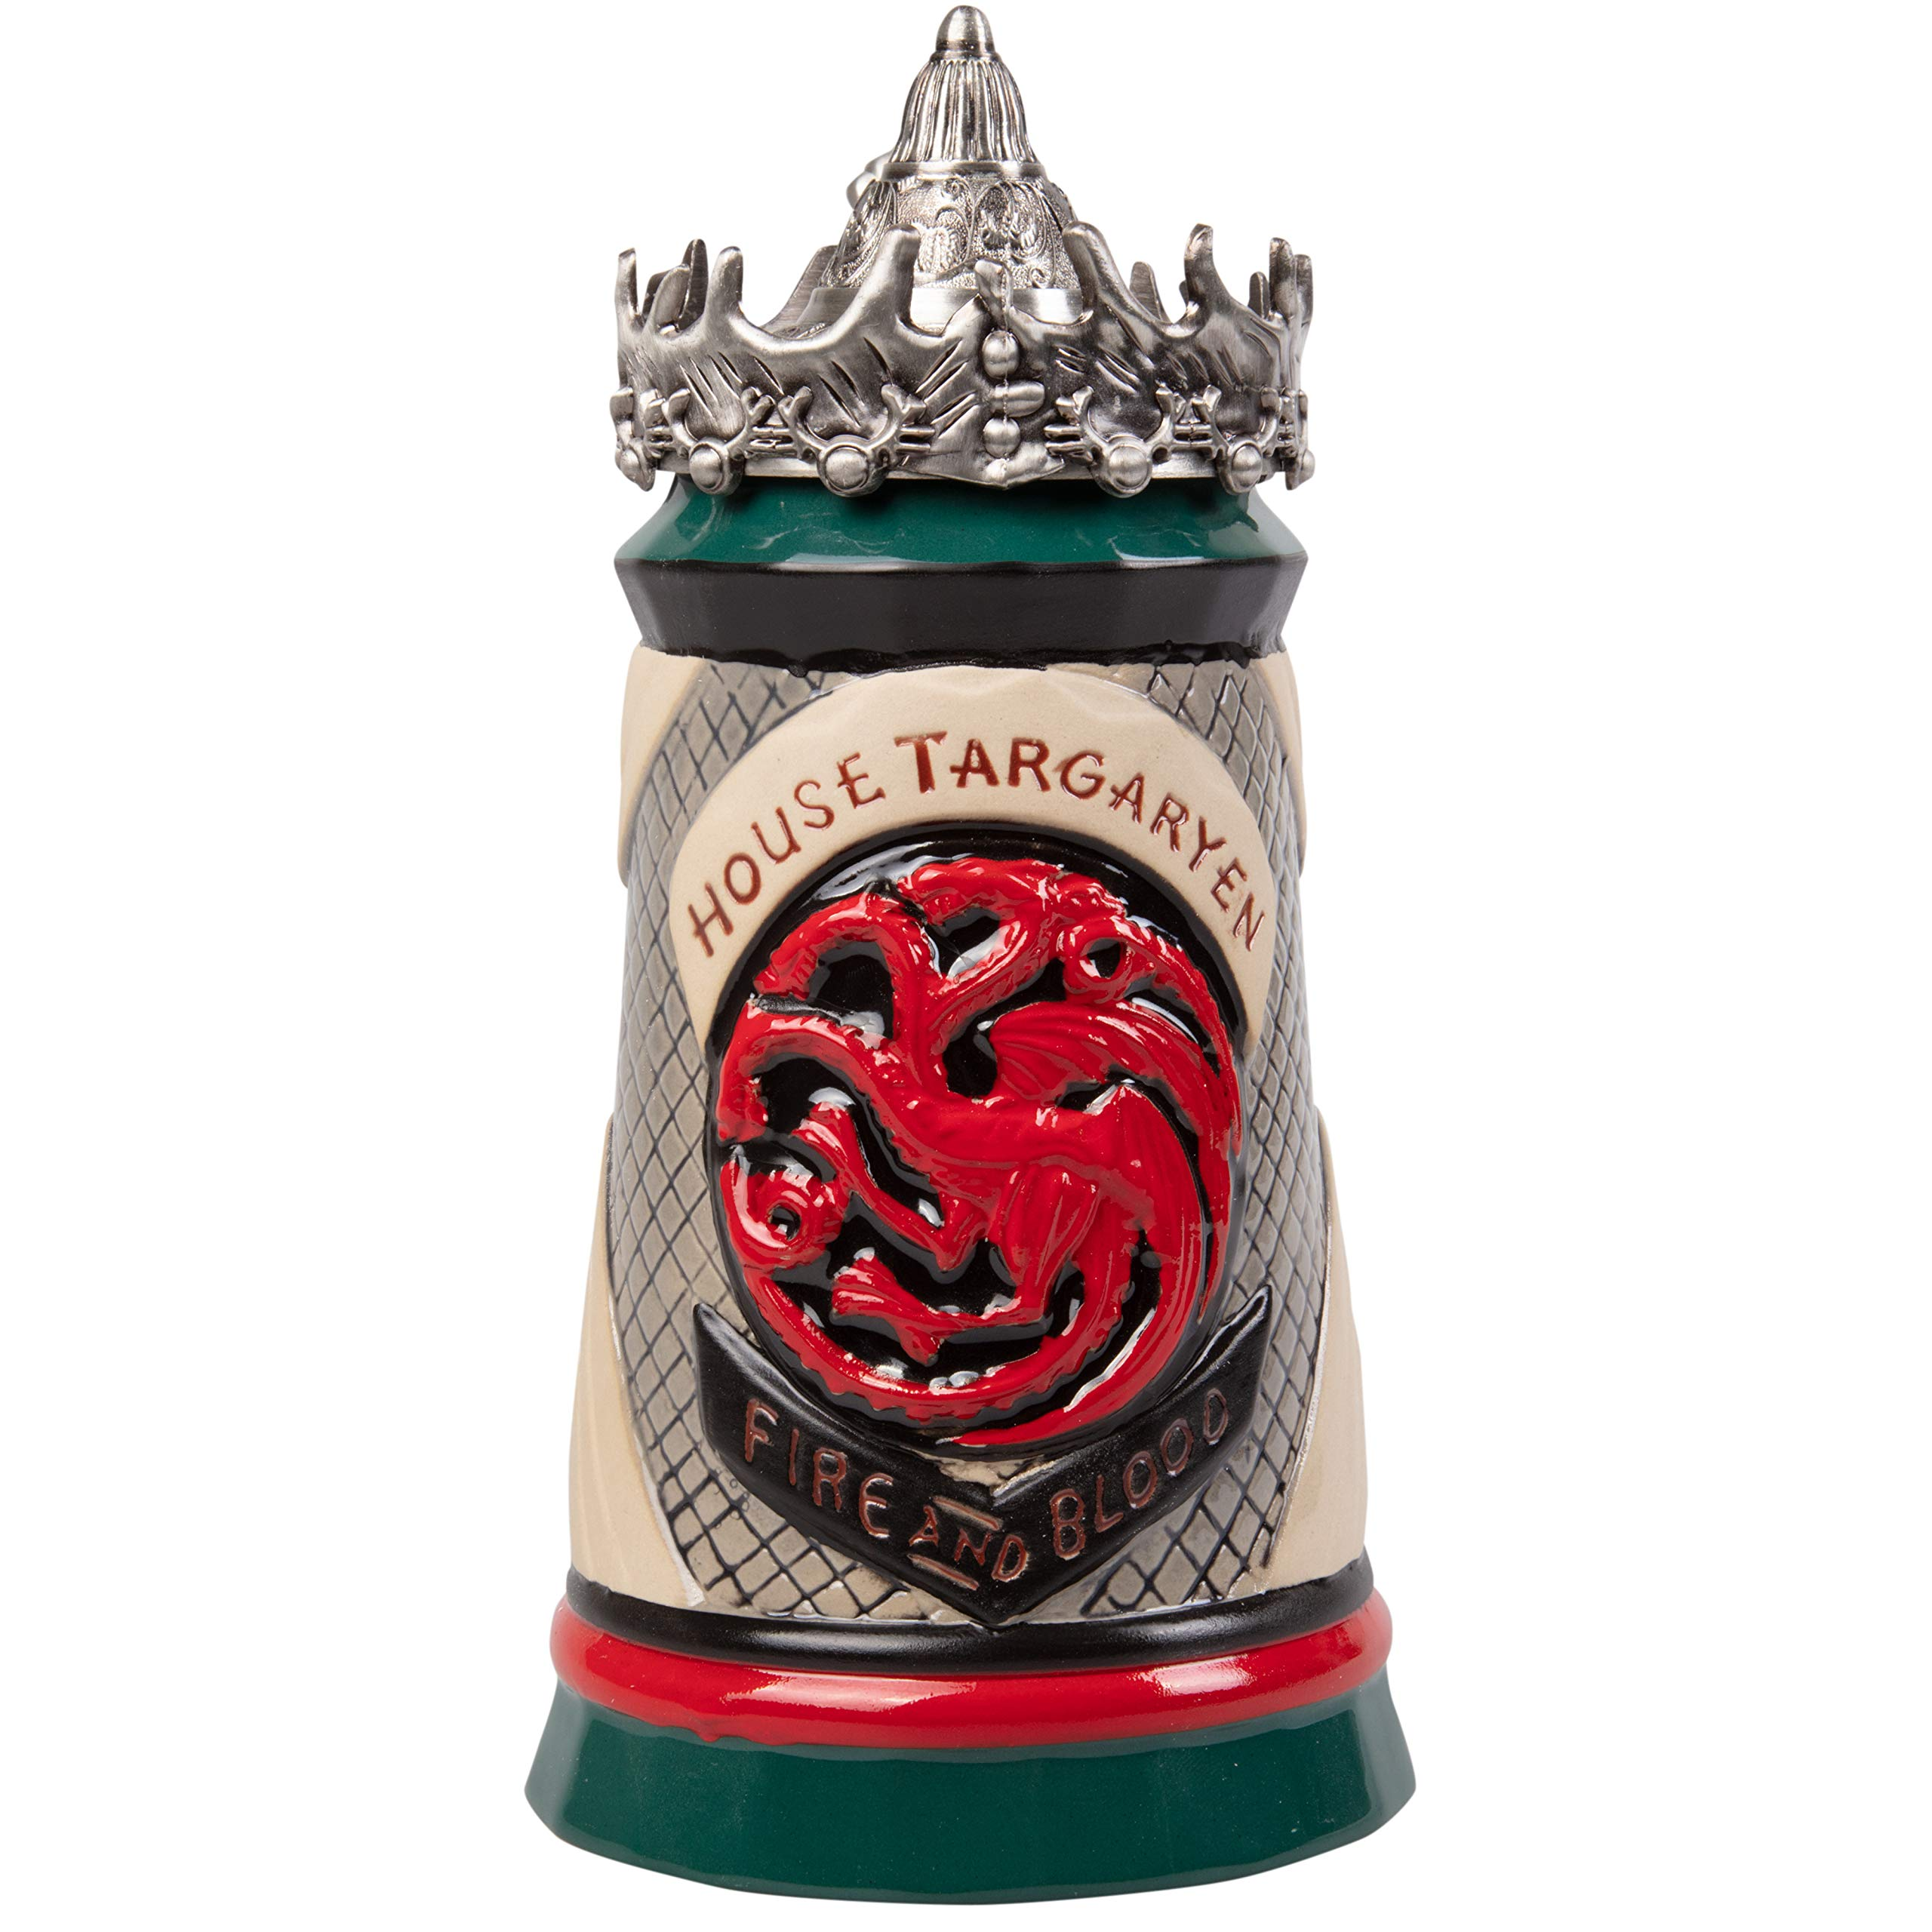 Game of Thrones House Targaryen Stein - 22 Oz Ceramic Base with Pewter Baratheon Crown Top by Game of Thrones (Image #1)